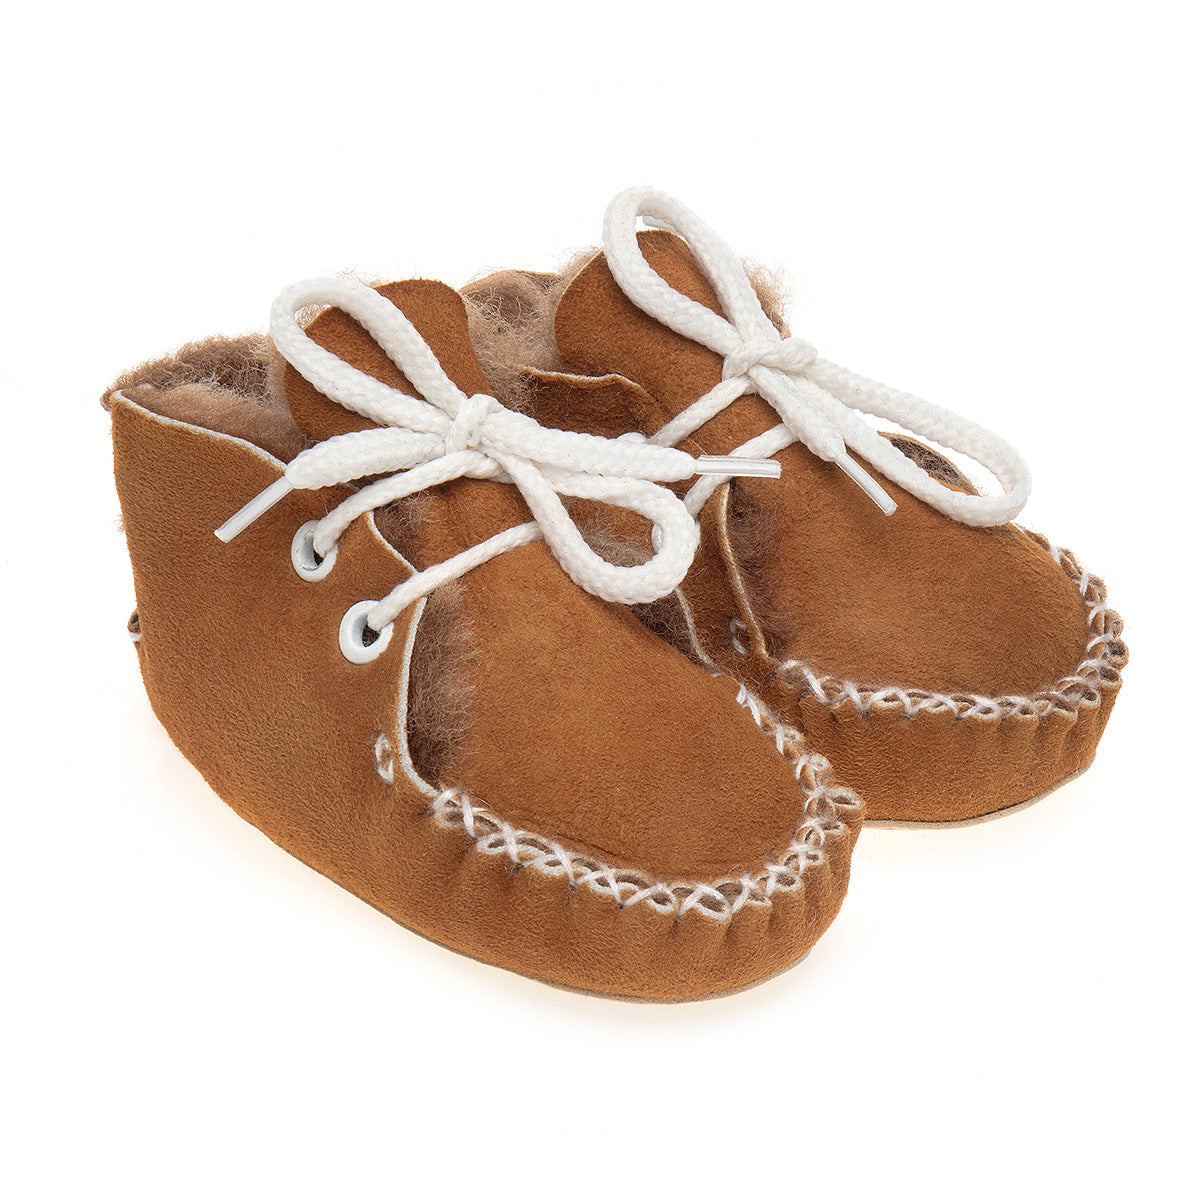 Lupe Hand-Stitched Sheepskin Baby Booties - Honey